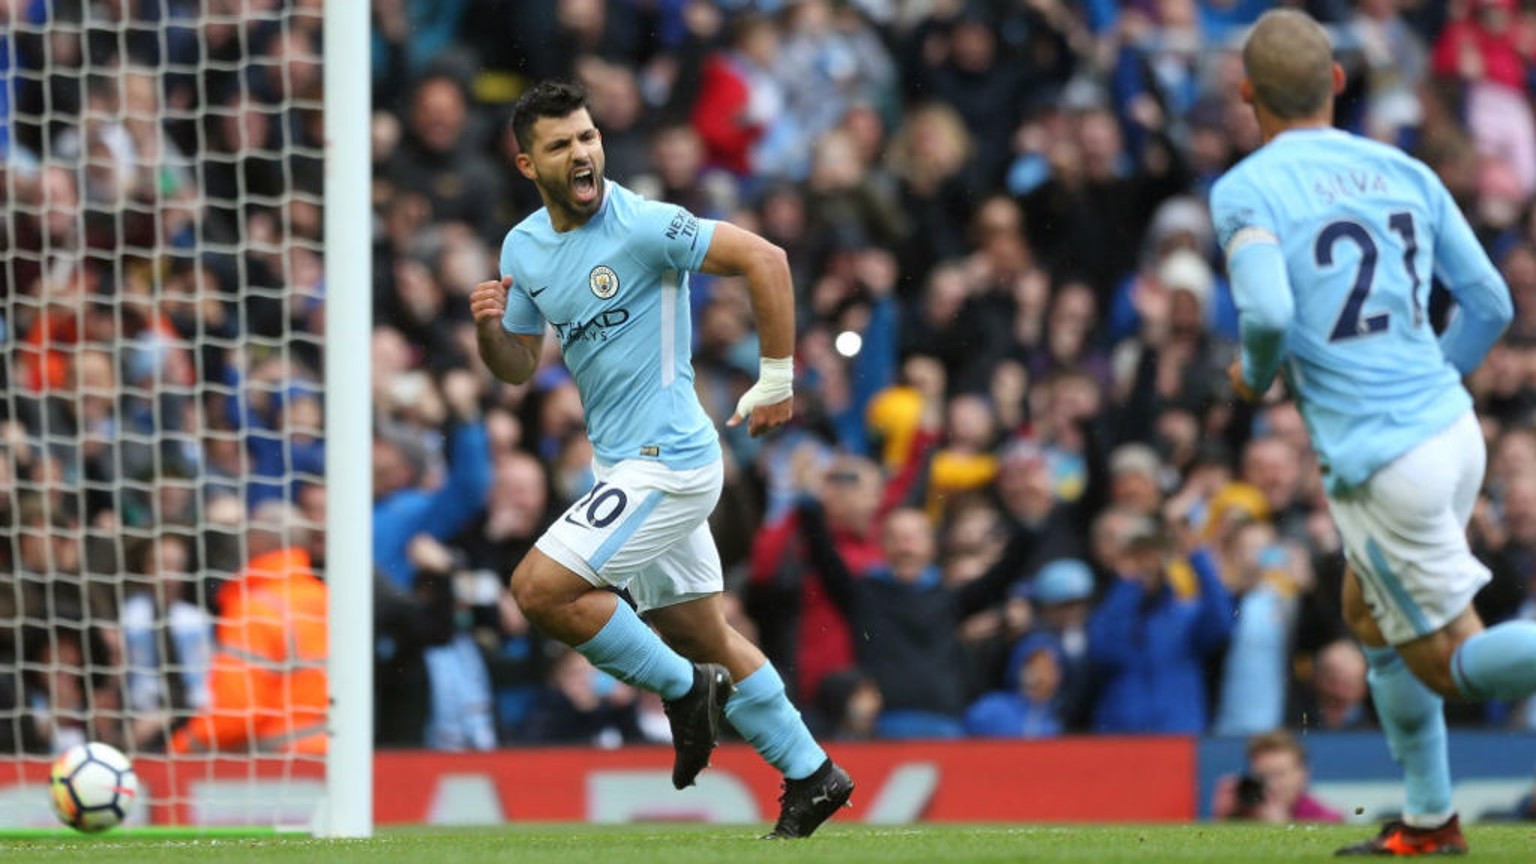 LETHAL WEAPON: Sergio wheels away in triumph after his penalty